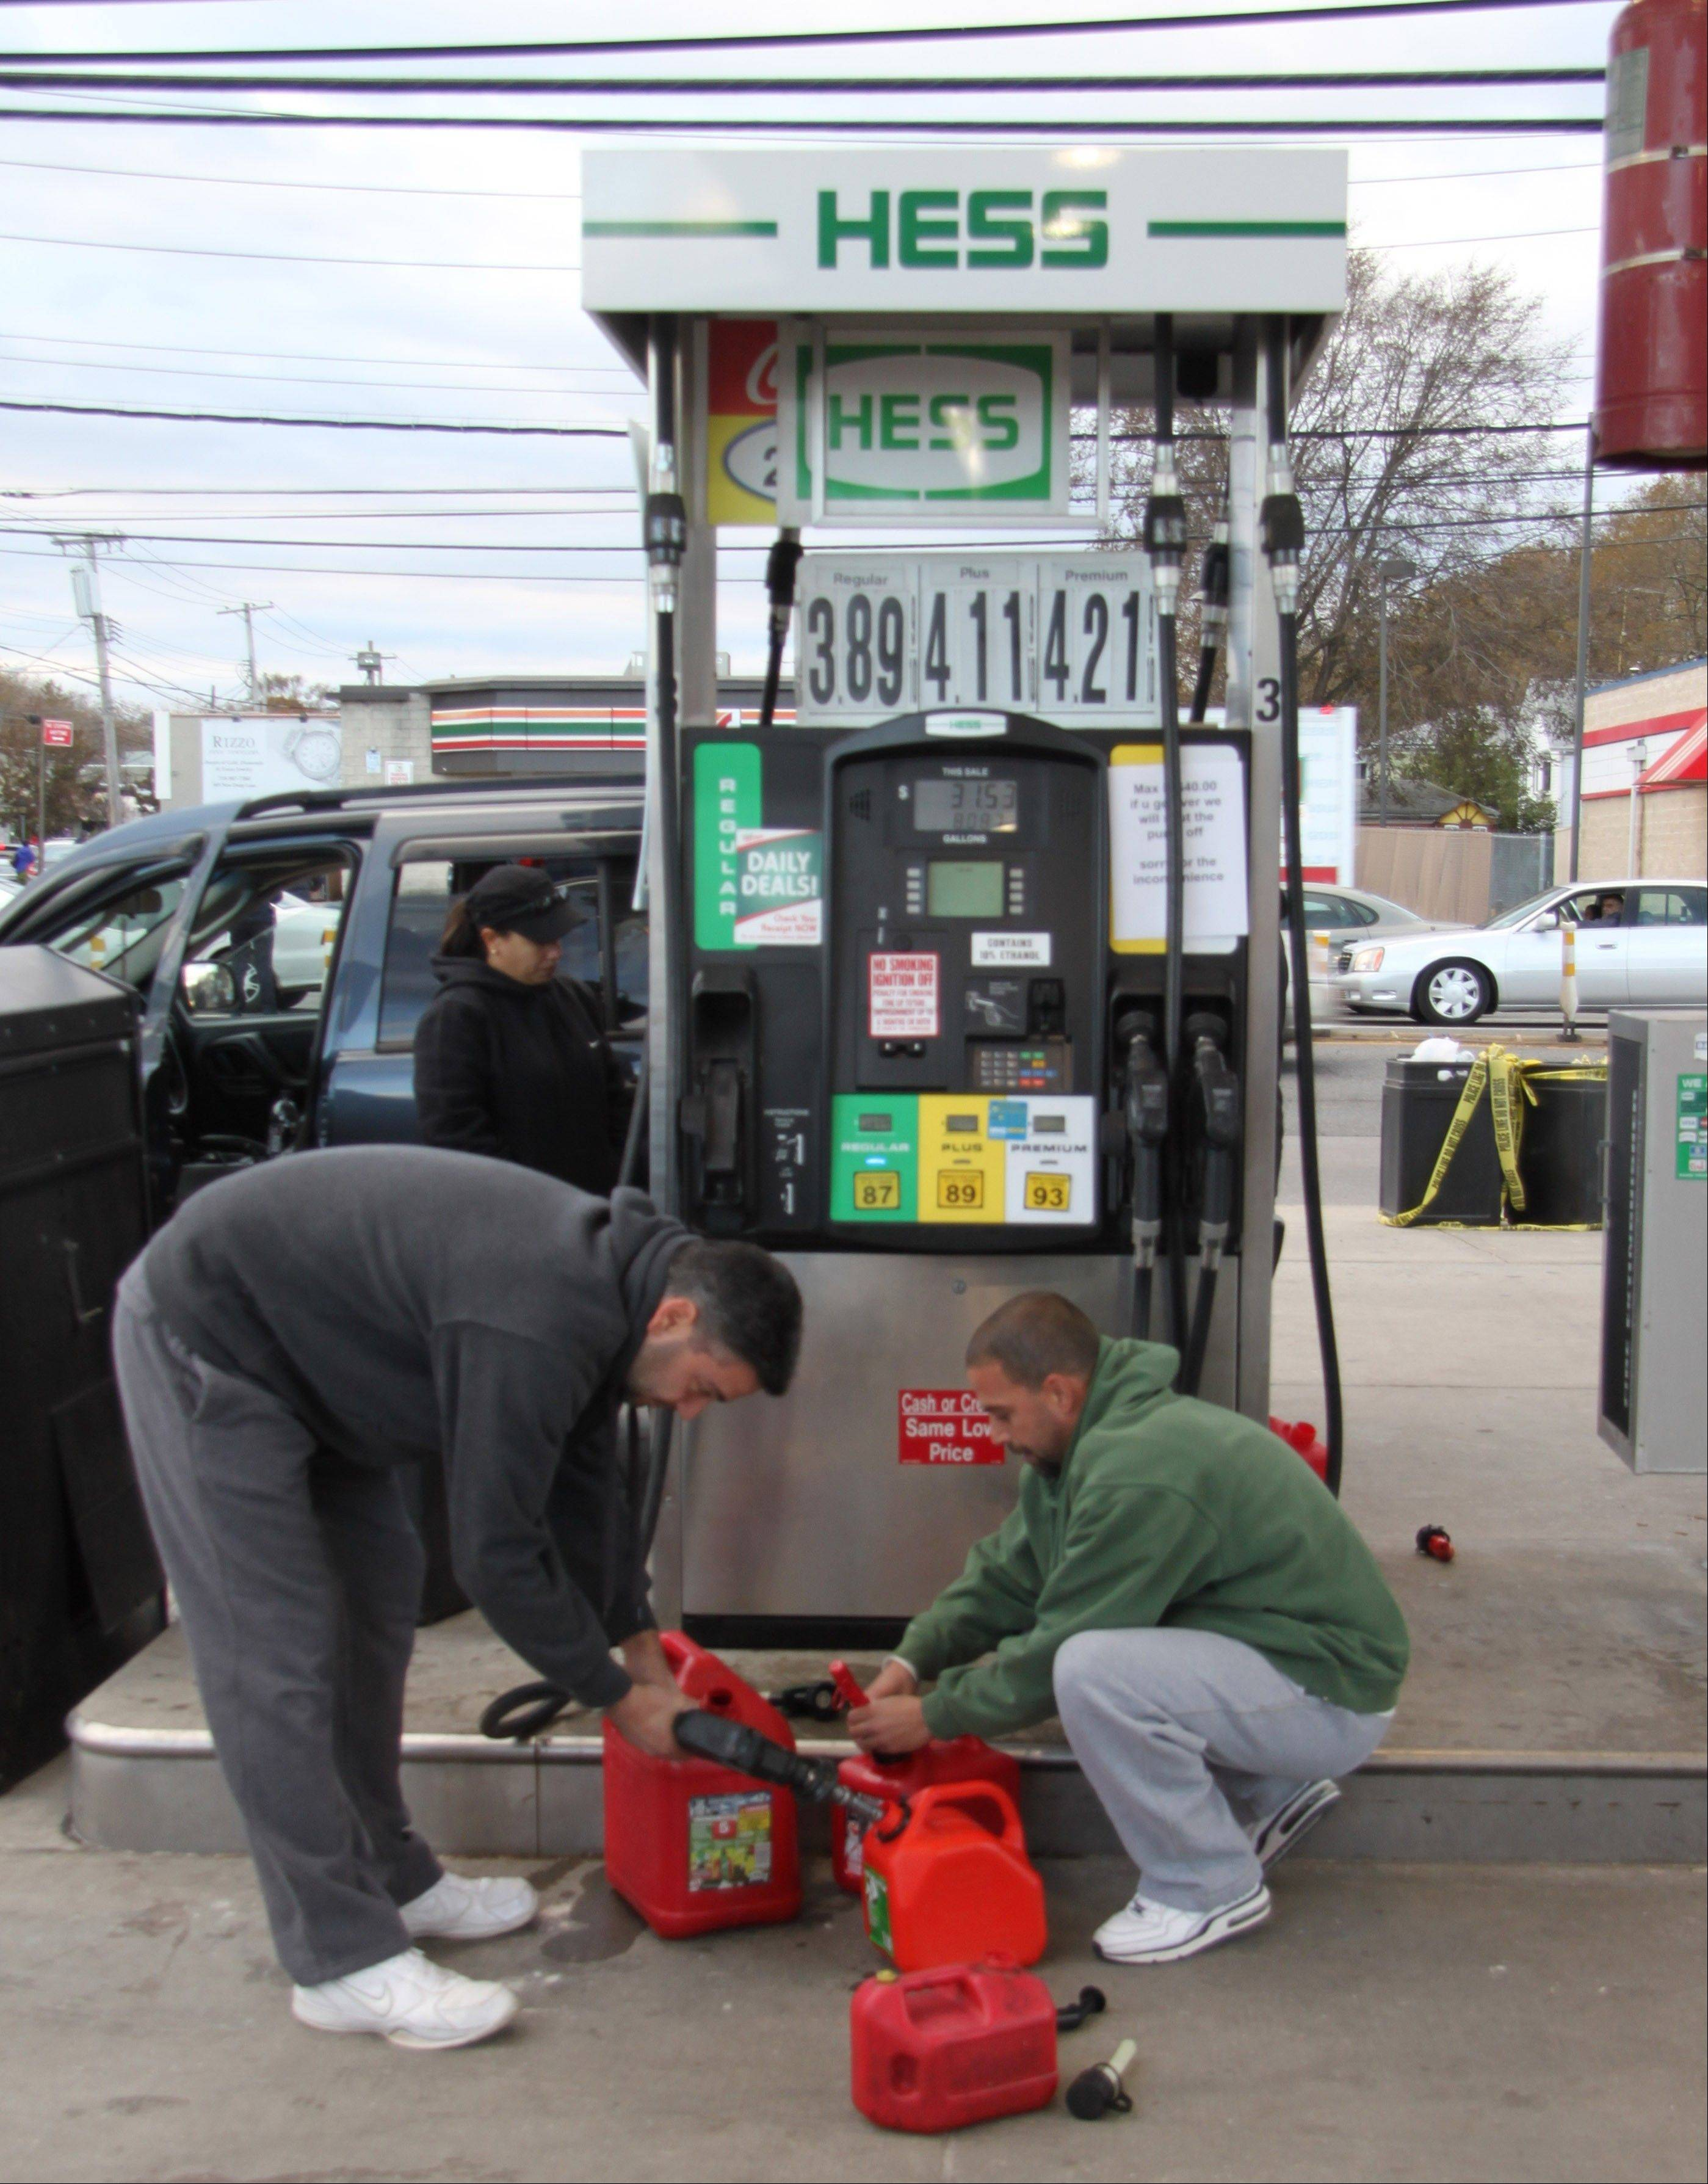 Ross Napoli, left, and Rob Balletto fill gas canisters at a Hess station in the New Dorp section of the Staten Island borough of New York for use in their cars Saturday. They had waited in line for about 40 minutes. The line for cars at the station was much longer, with drivers waiting for up to two hours.